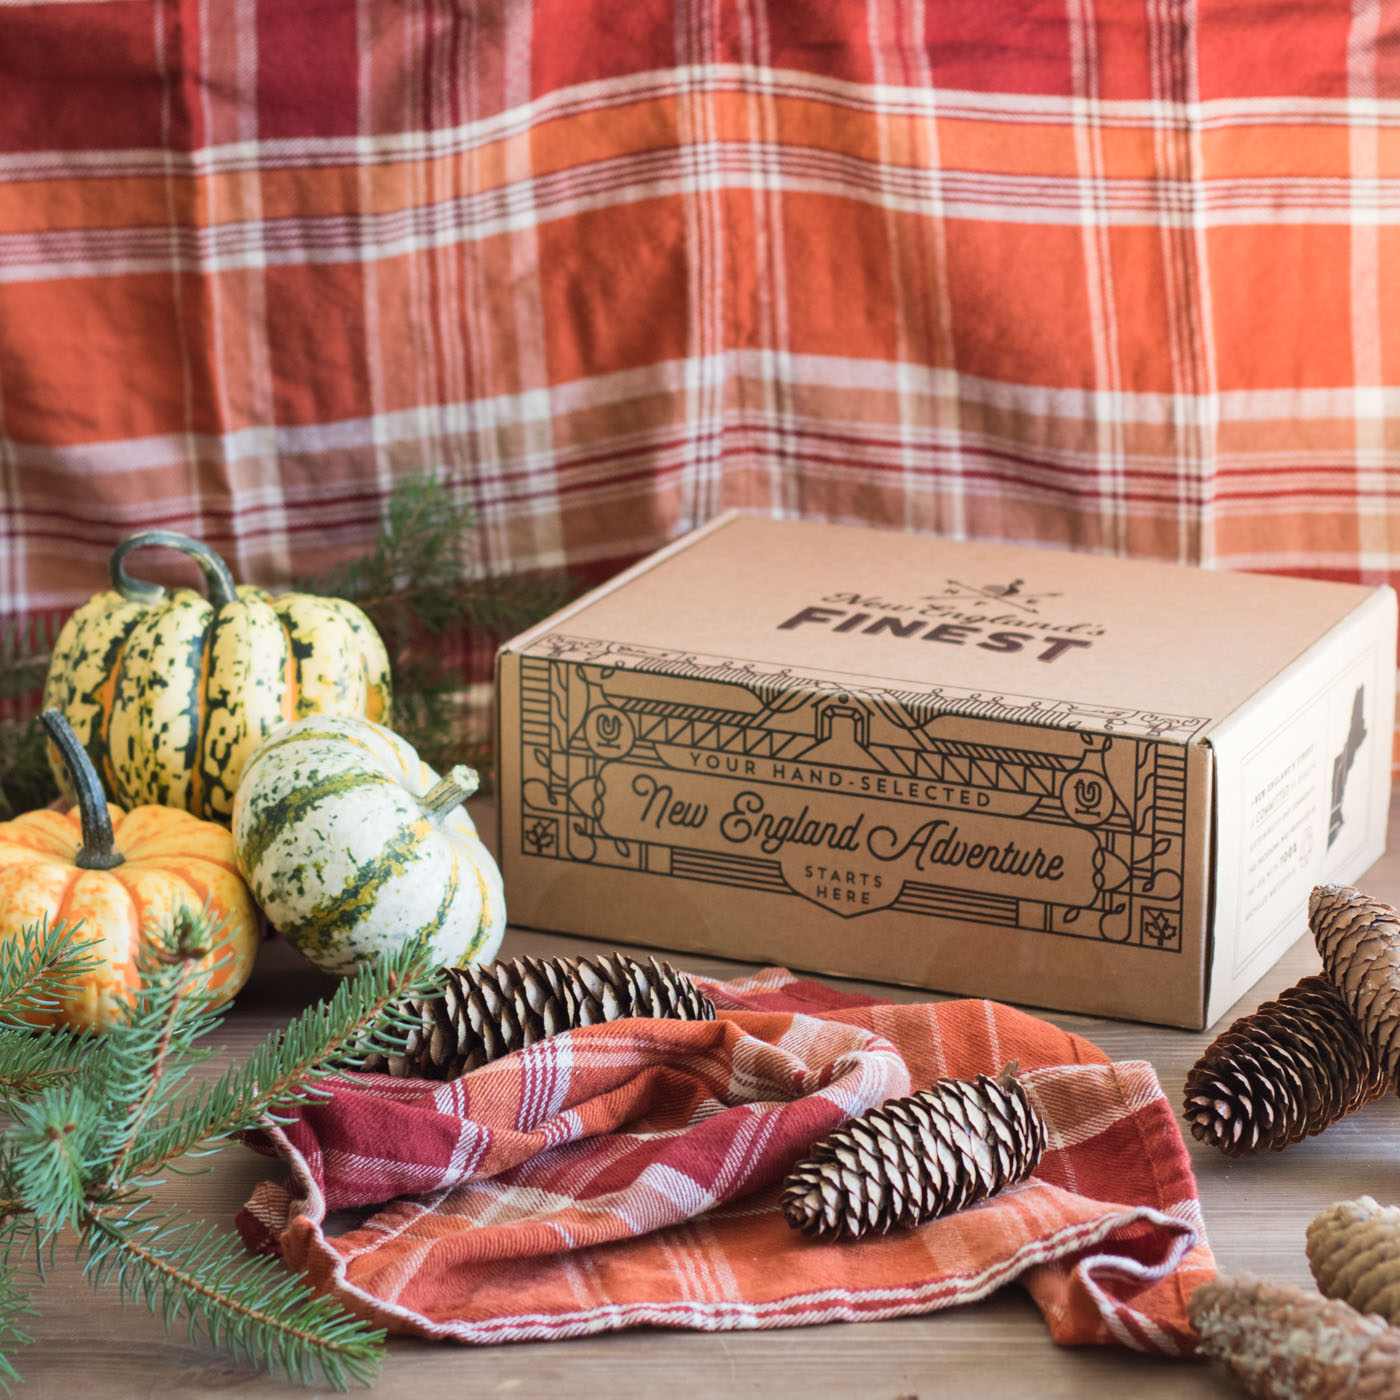 New England's Finest Subscription Box Services | Simply Lovebirds